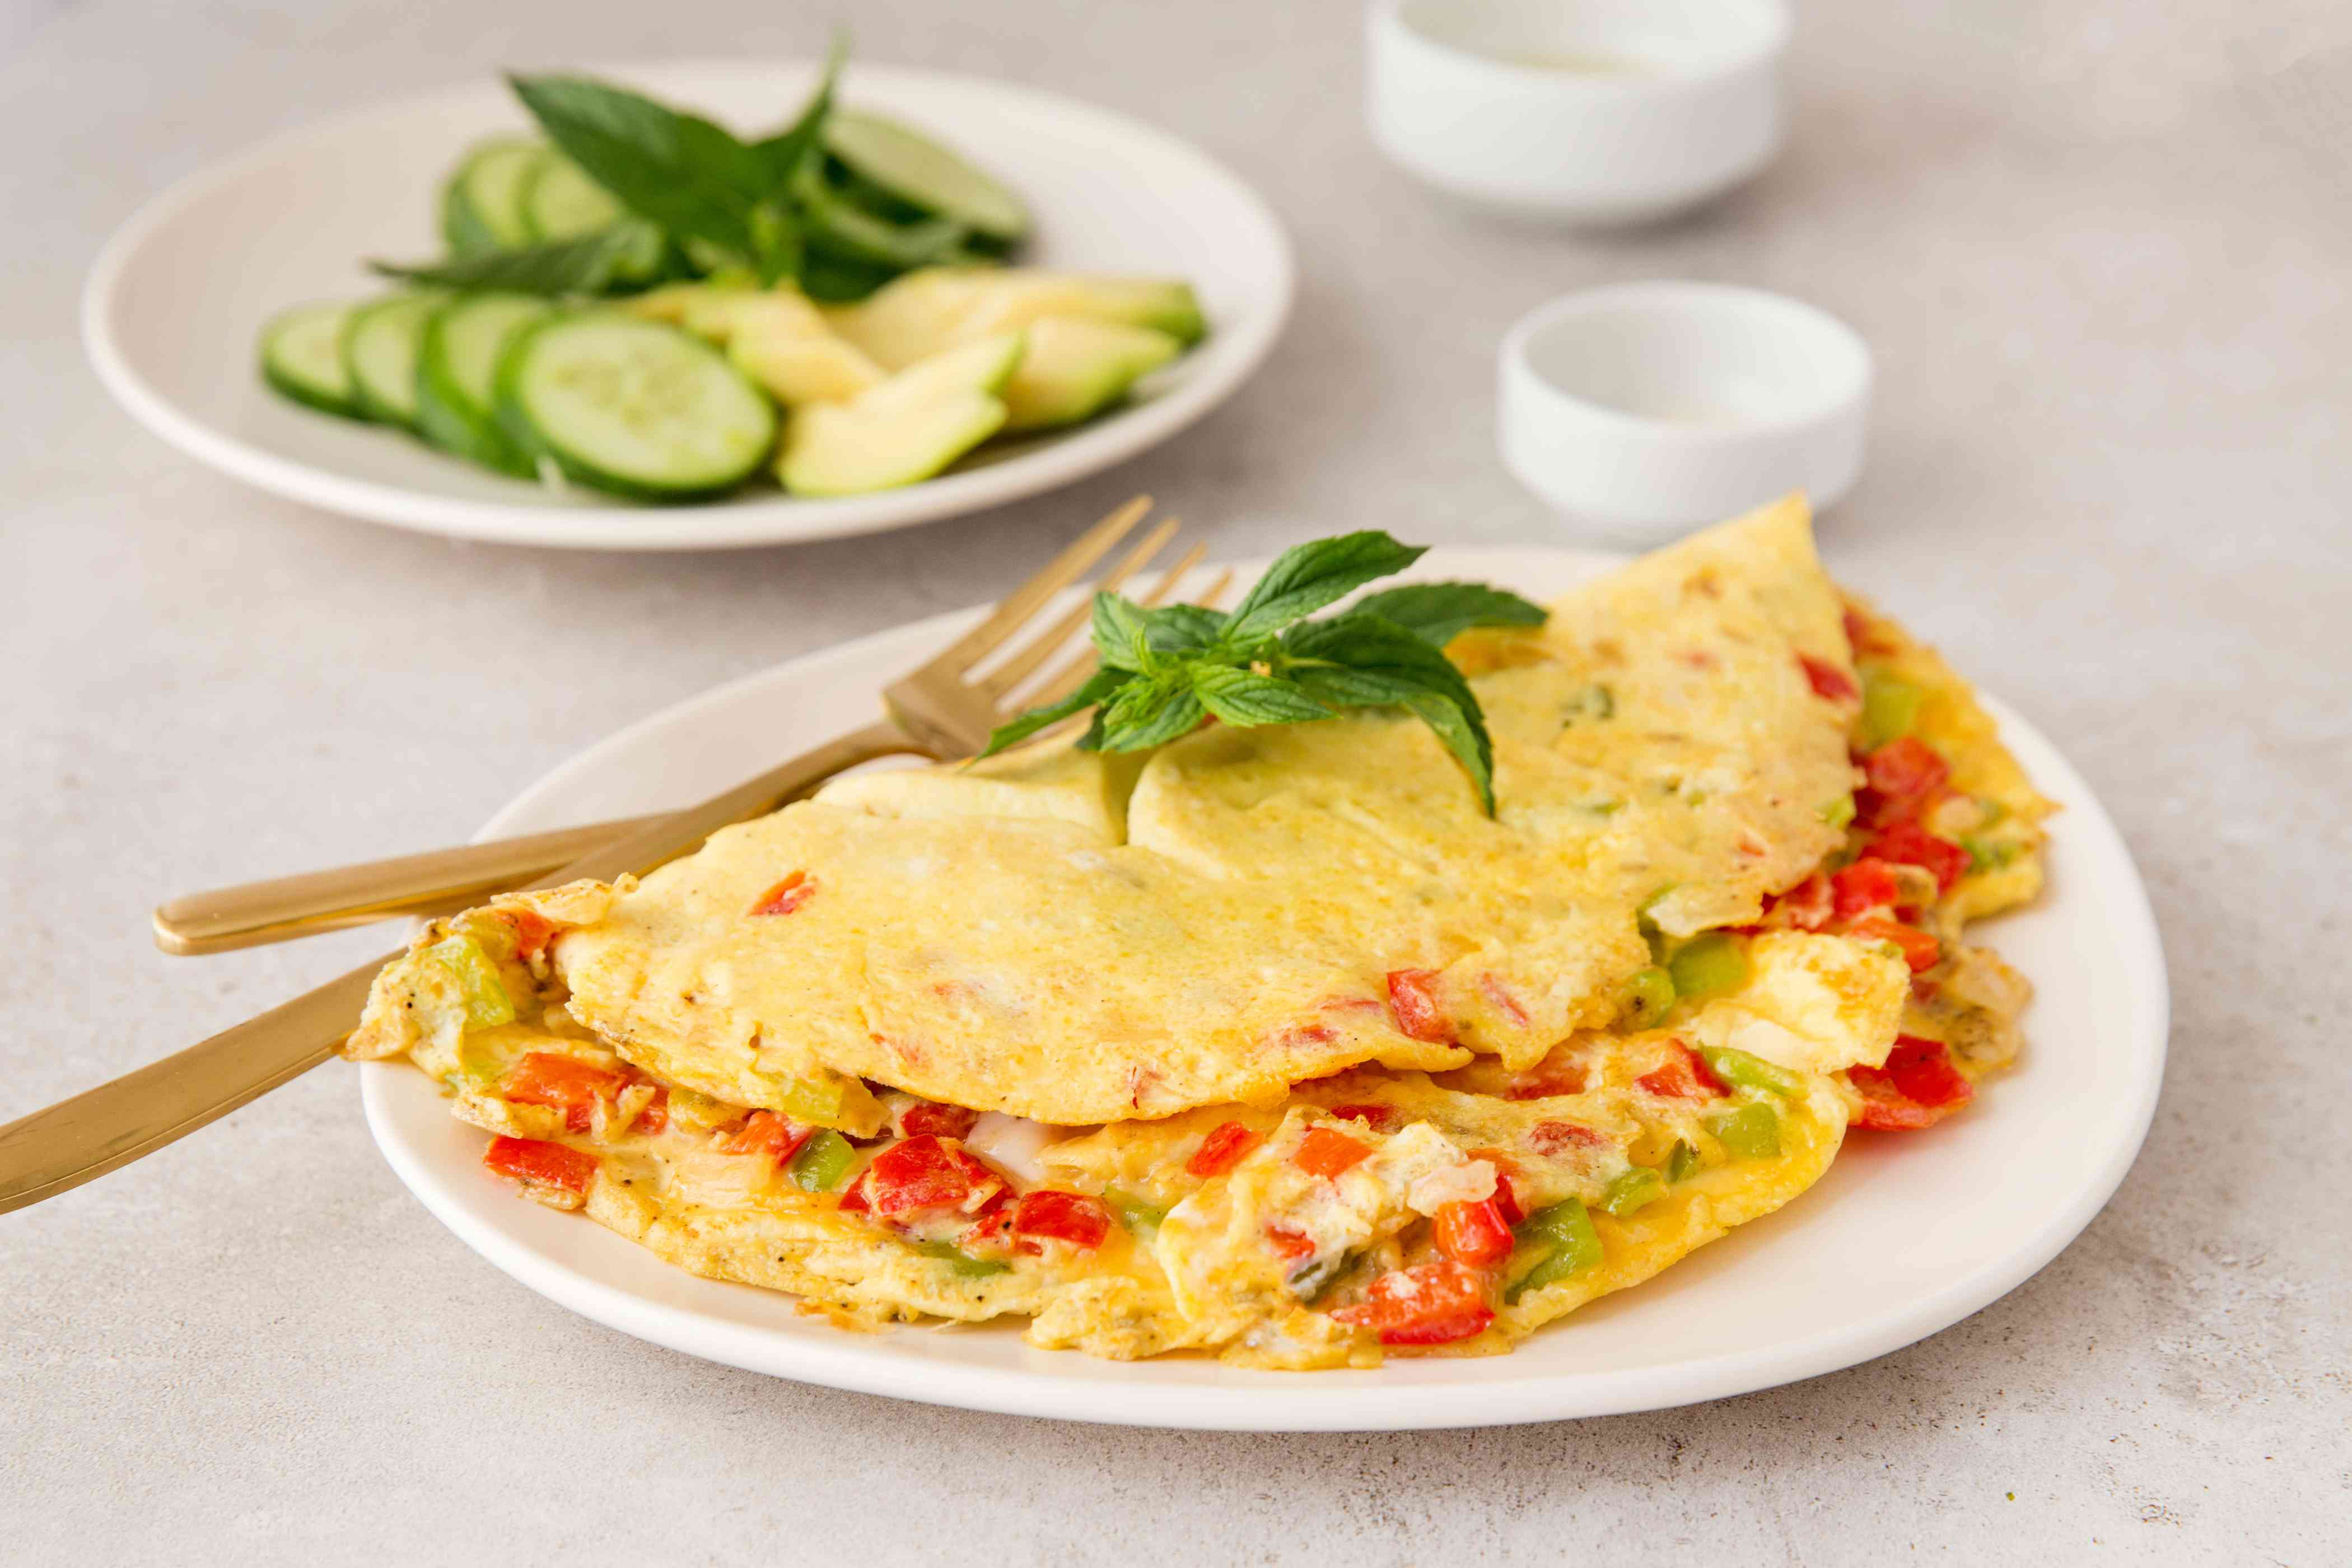 Easy Vegetarian Omelet With Bell Peppers recipe